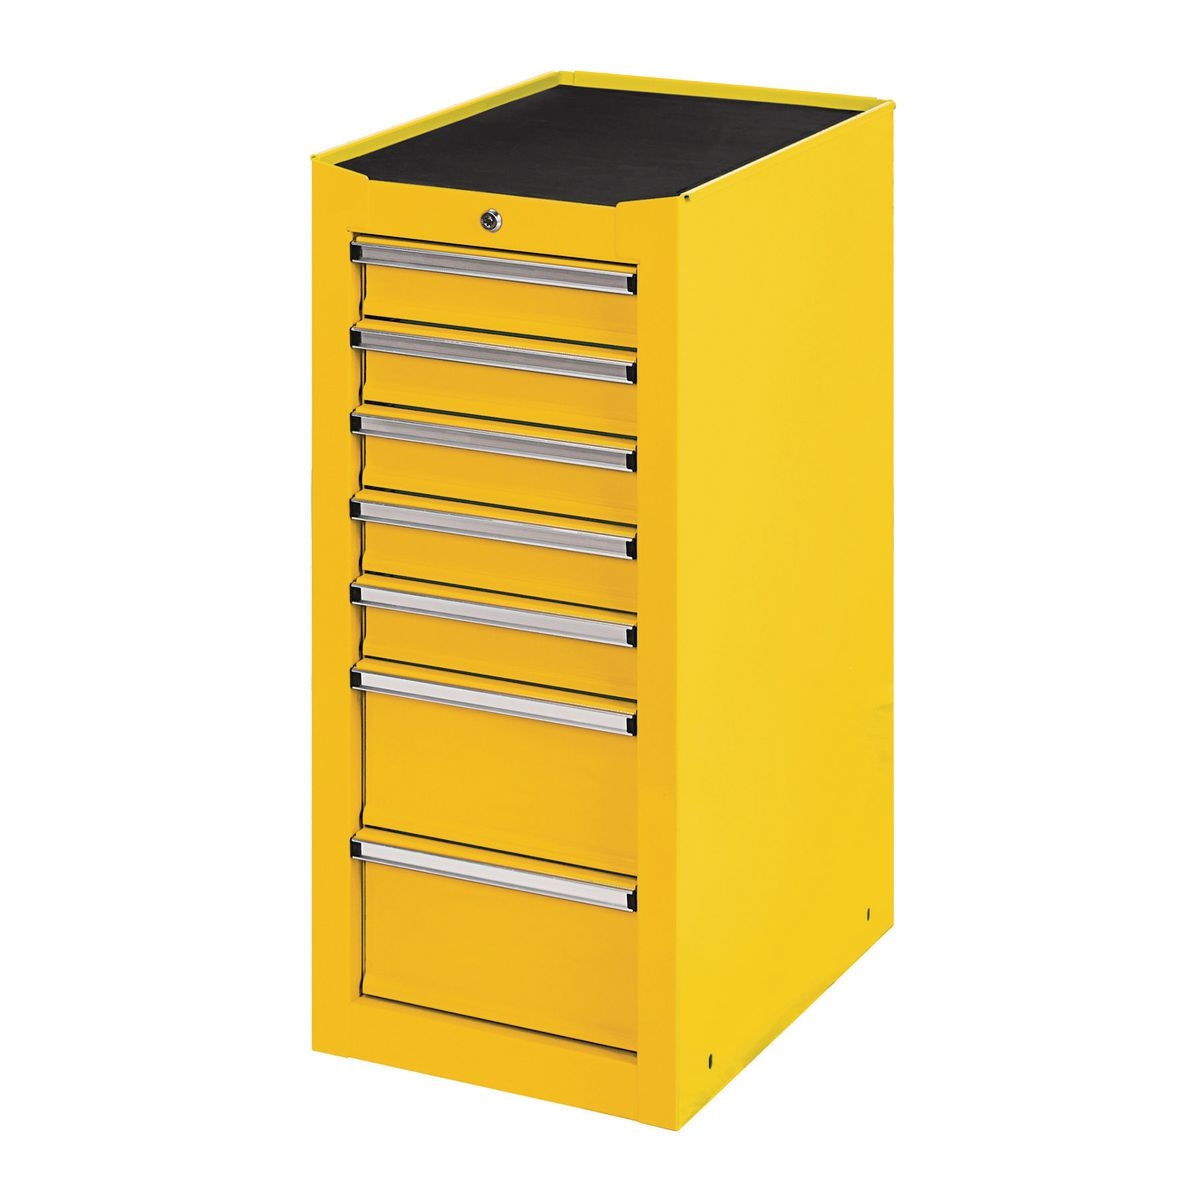 U.S. GENERAL 14.5 in. Yellow End Cabinet - Item 64973